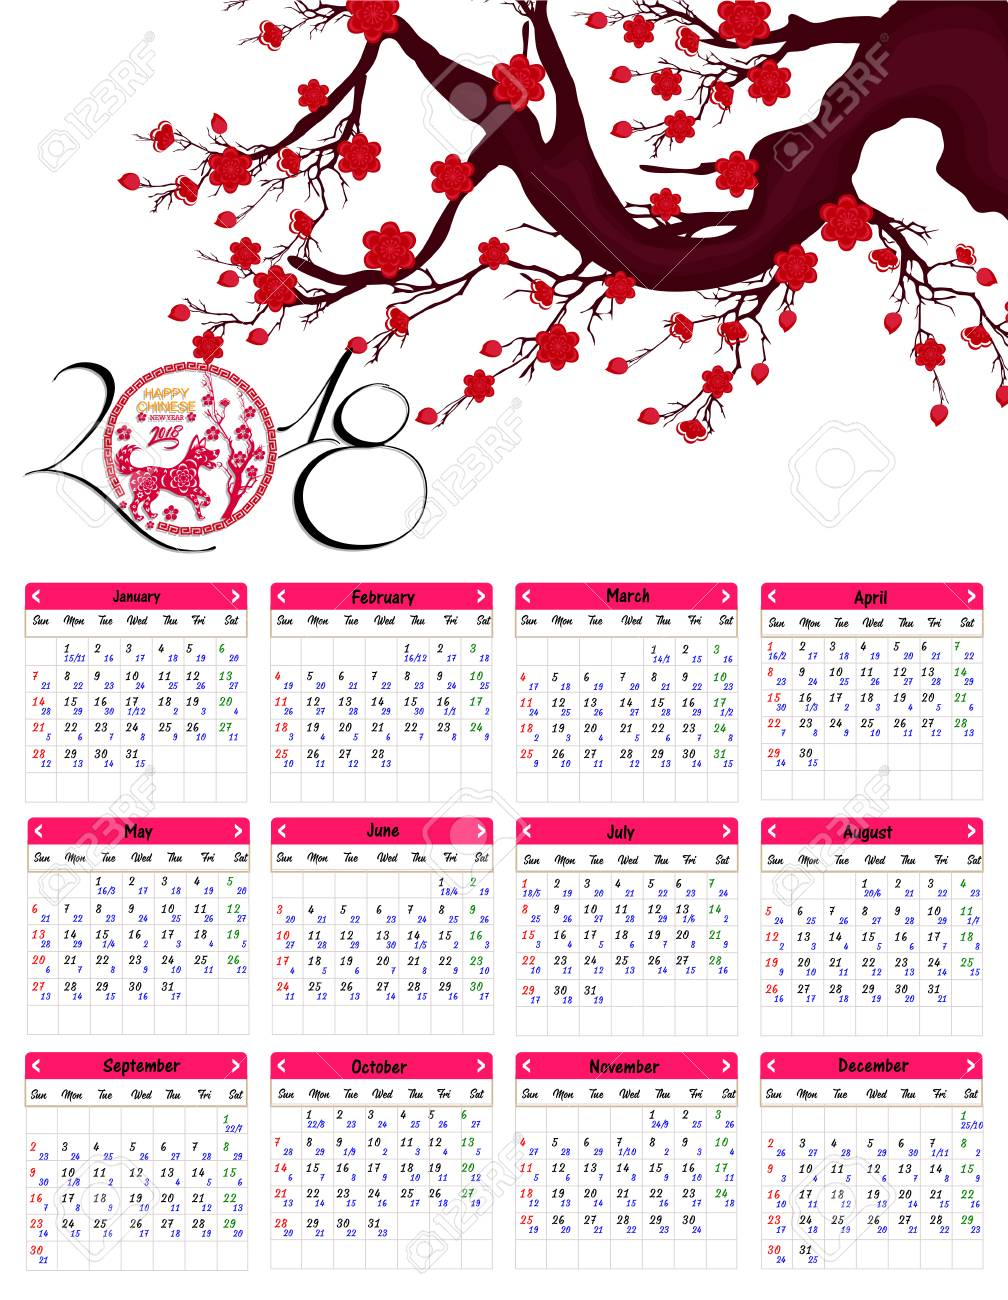 lunar calendar chinese calendar for happy new year 2018 year of the dog stock